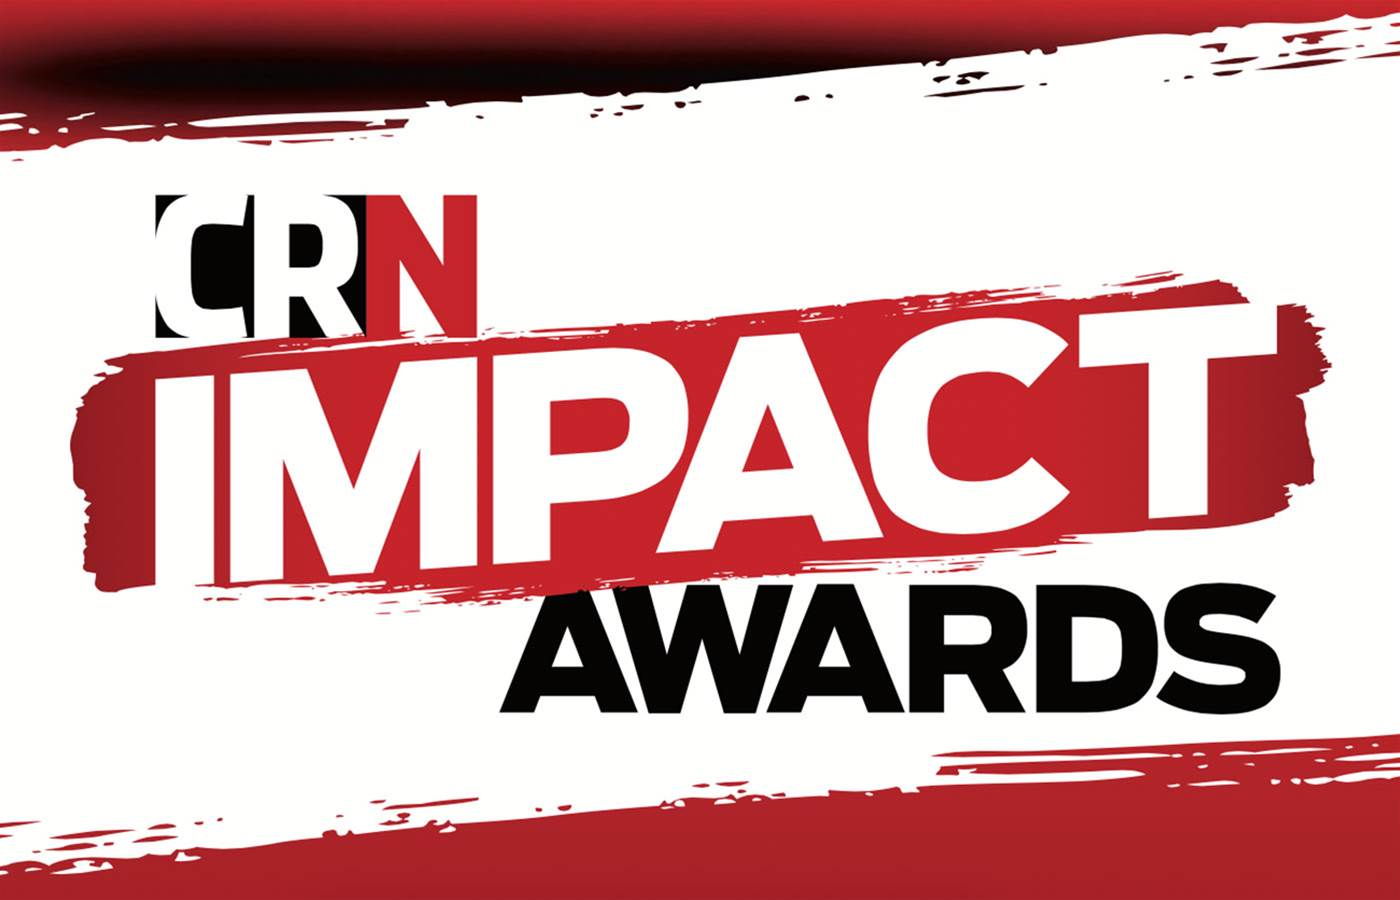 Call for entries: 2019 CRN Impact Awards now open!